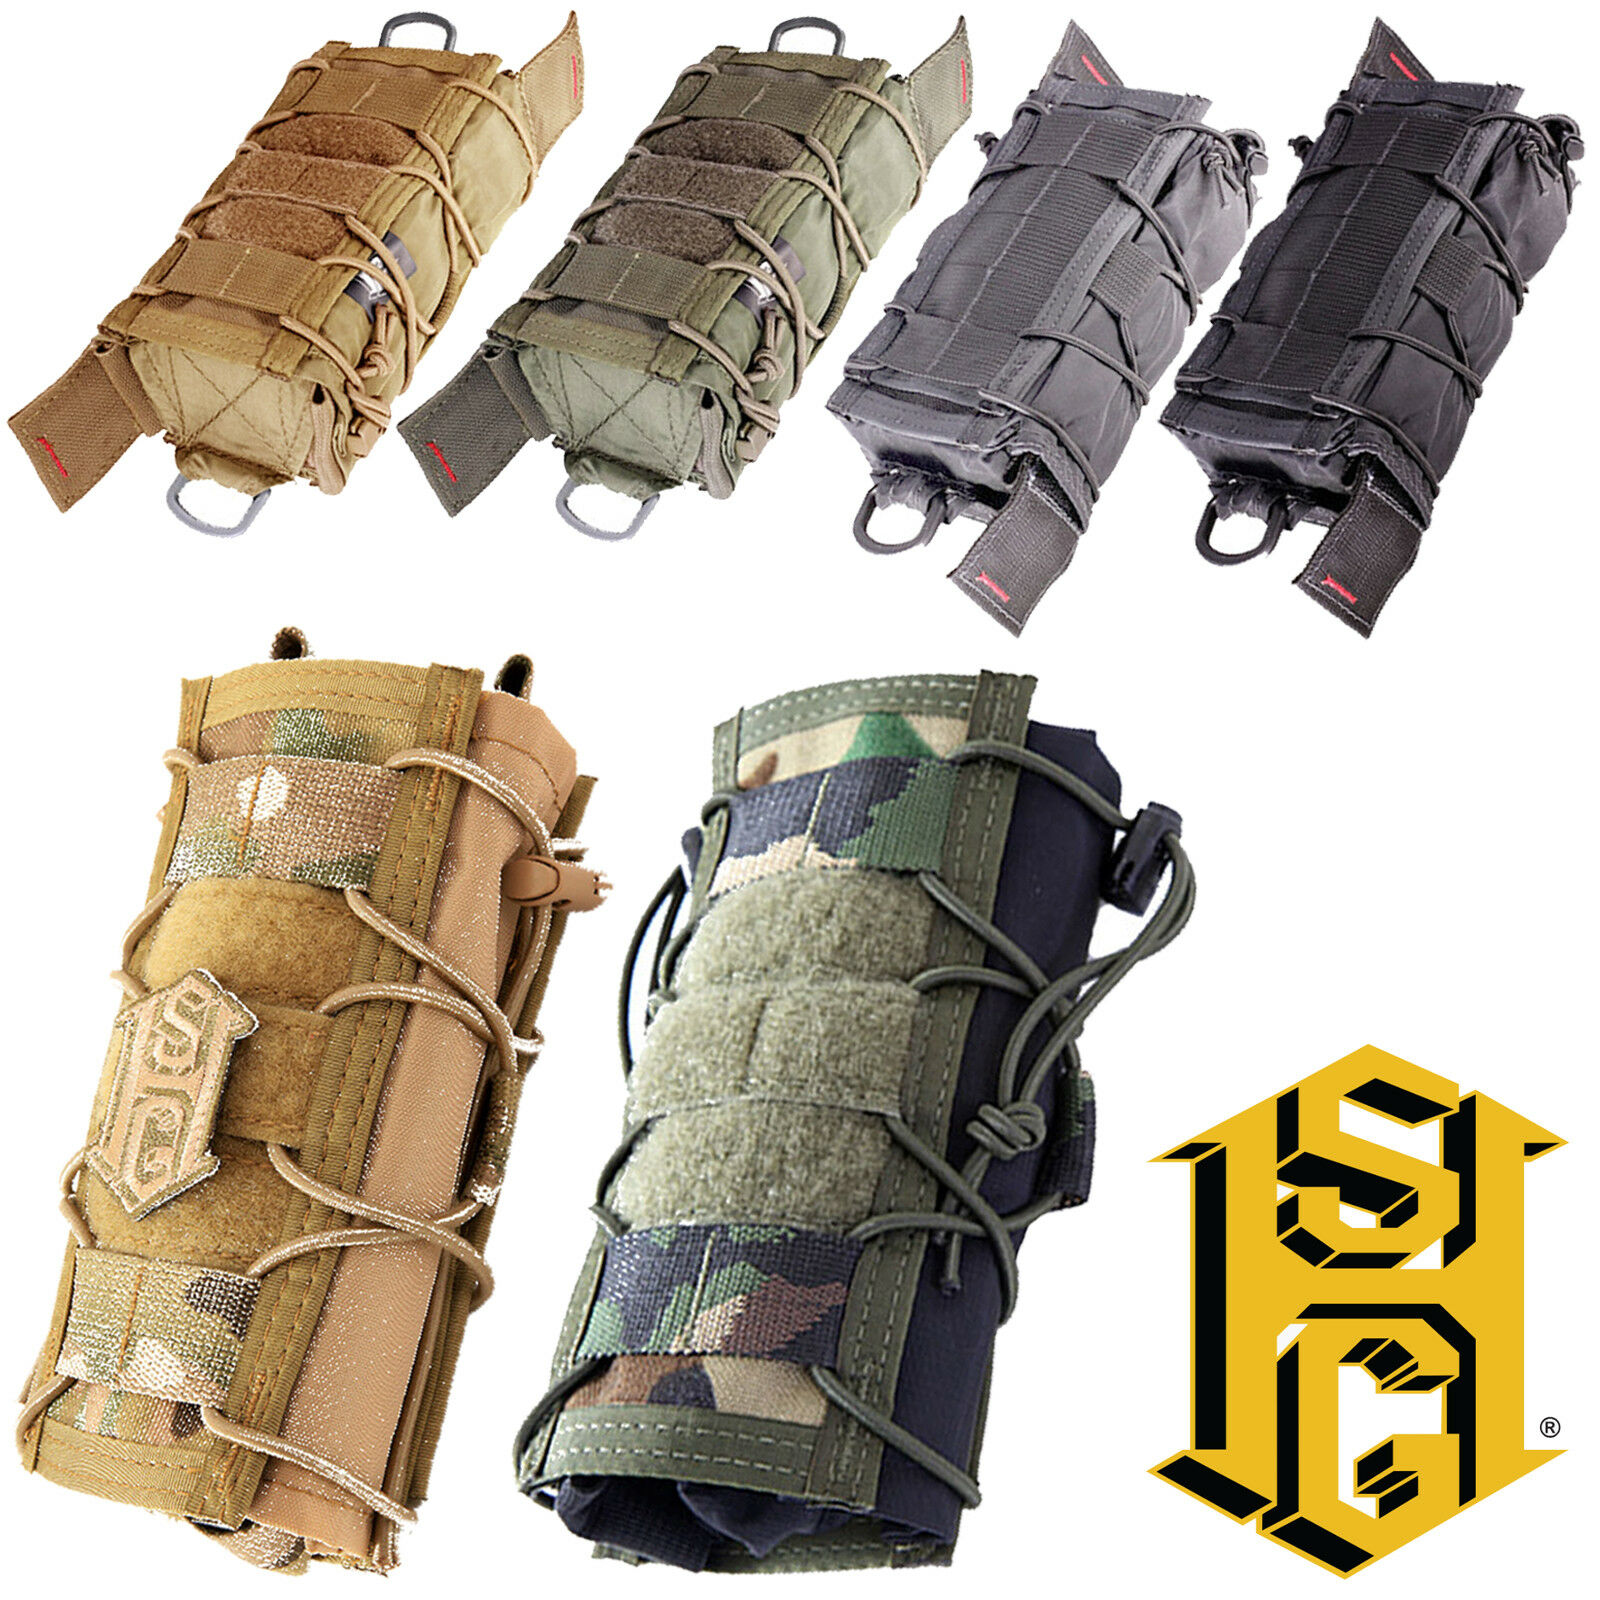 HSGI Tactical MOLLE Modular Multi-Mission M3T Medical IFAK Bolsa de utilidad TACO